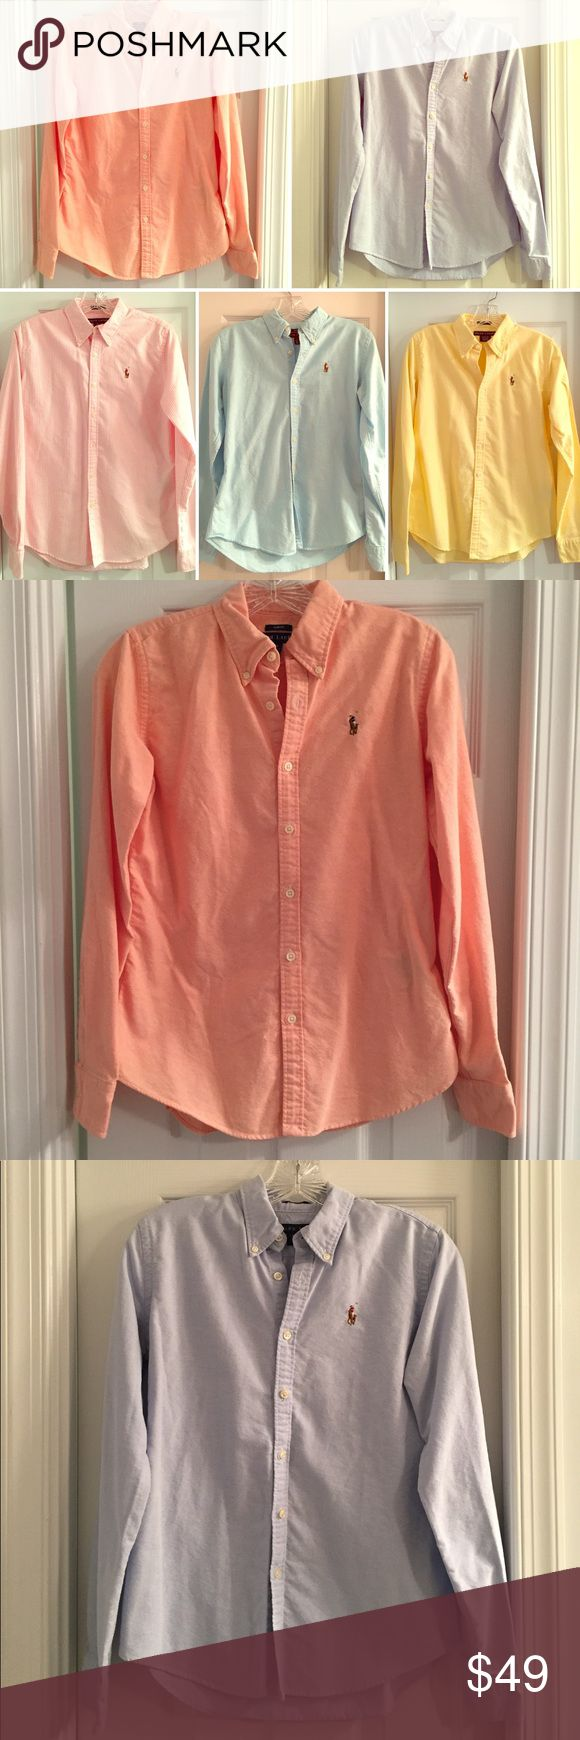 BUNDLE: 5 Ralph Lauren Oxford Shirts, 25% off! Buy more and save!  5 Ralph Lauren Cotton button-down Oxford shirts.  Slim-fit women's size 6. Colors: orange, yellow, blue, turquoise, pink & white striped (my favorite!).  They're in good condition, with minor flaws - yellow shirt has a small stain by the bottom button, pink shirt is missing a button.  They're listed individually in my closet for $13 each; buy all 5 for a 25% discount! Ralph Lauren Tops Button Down Shirts